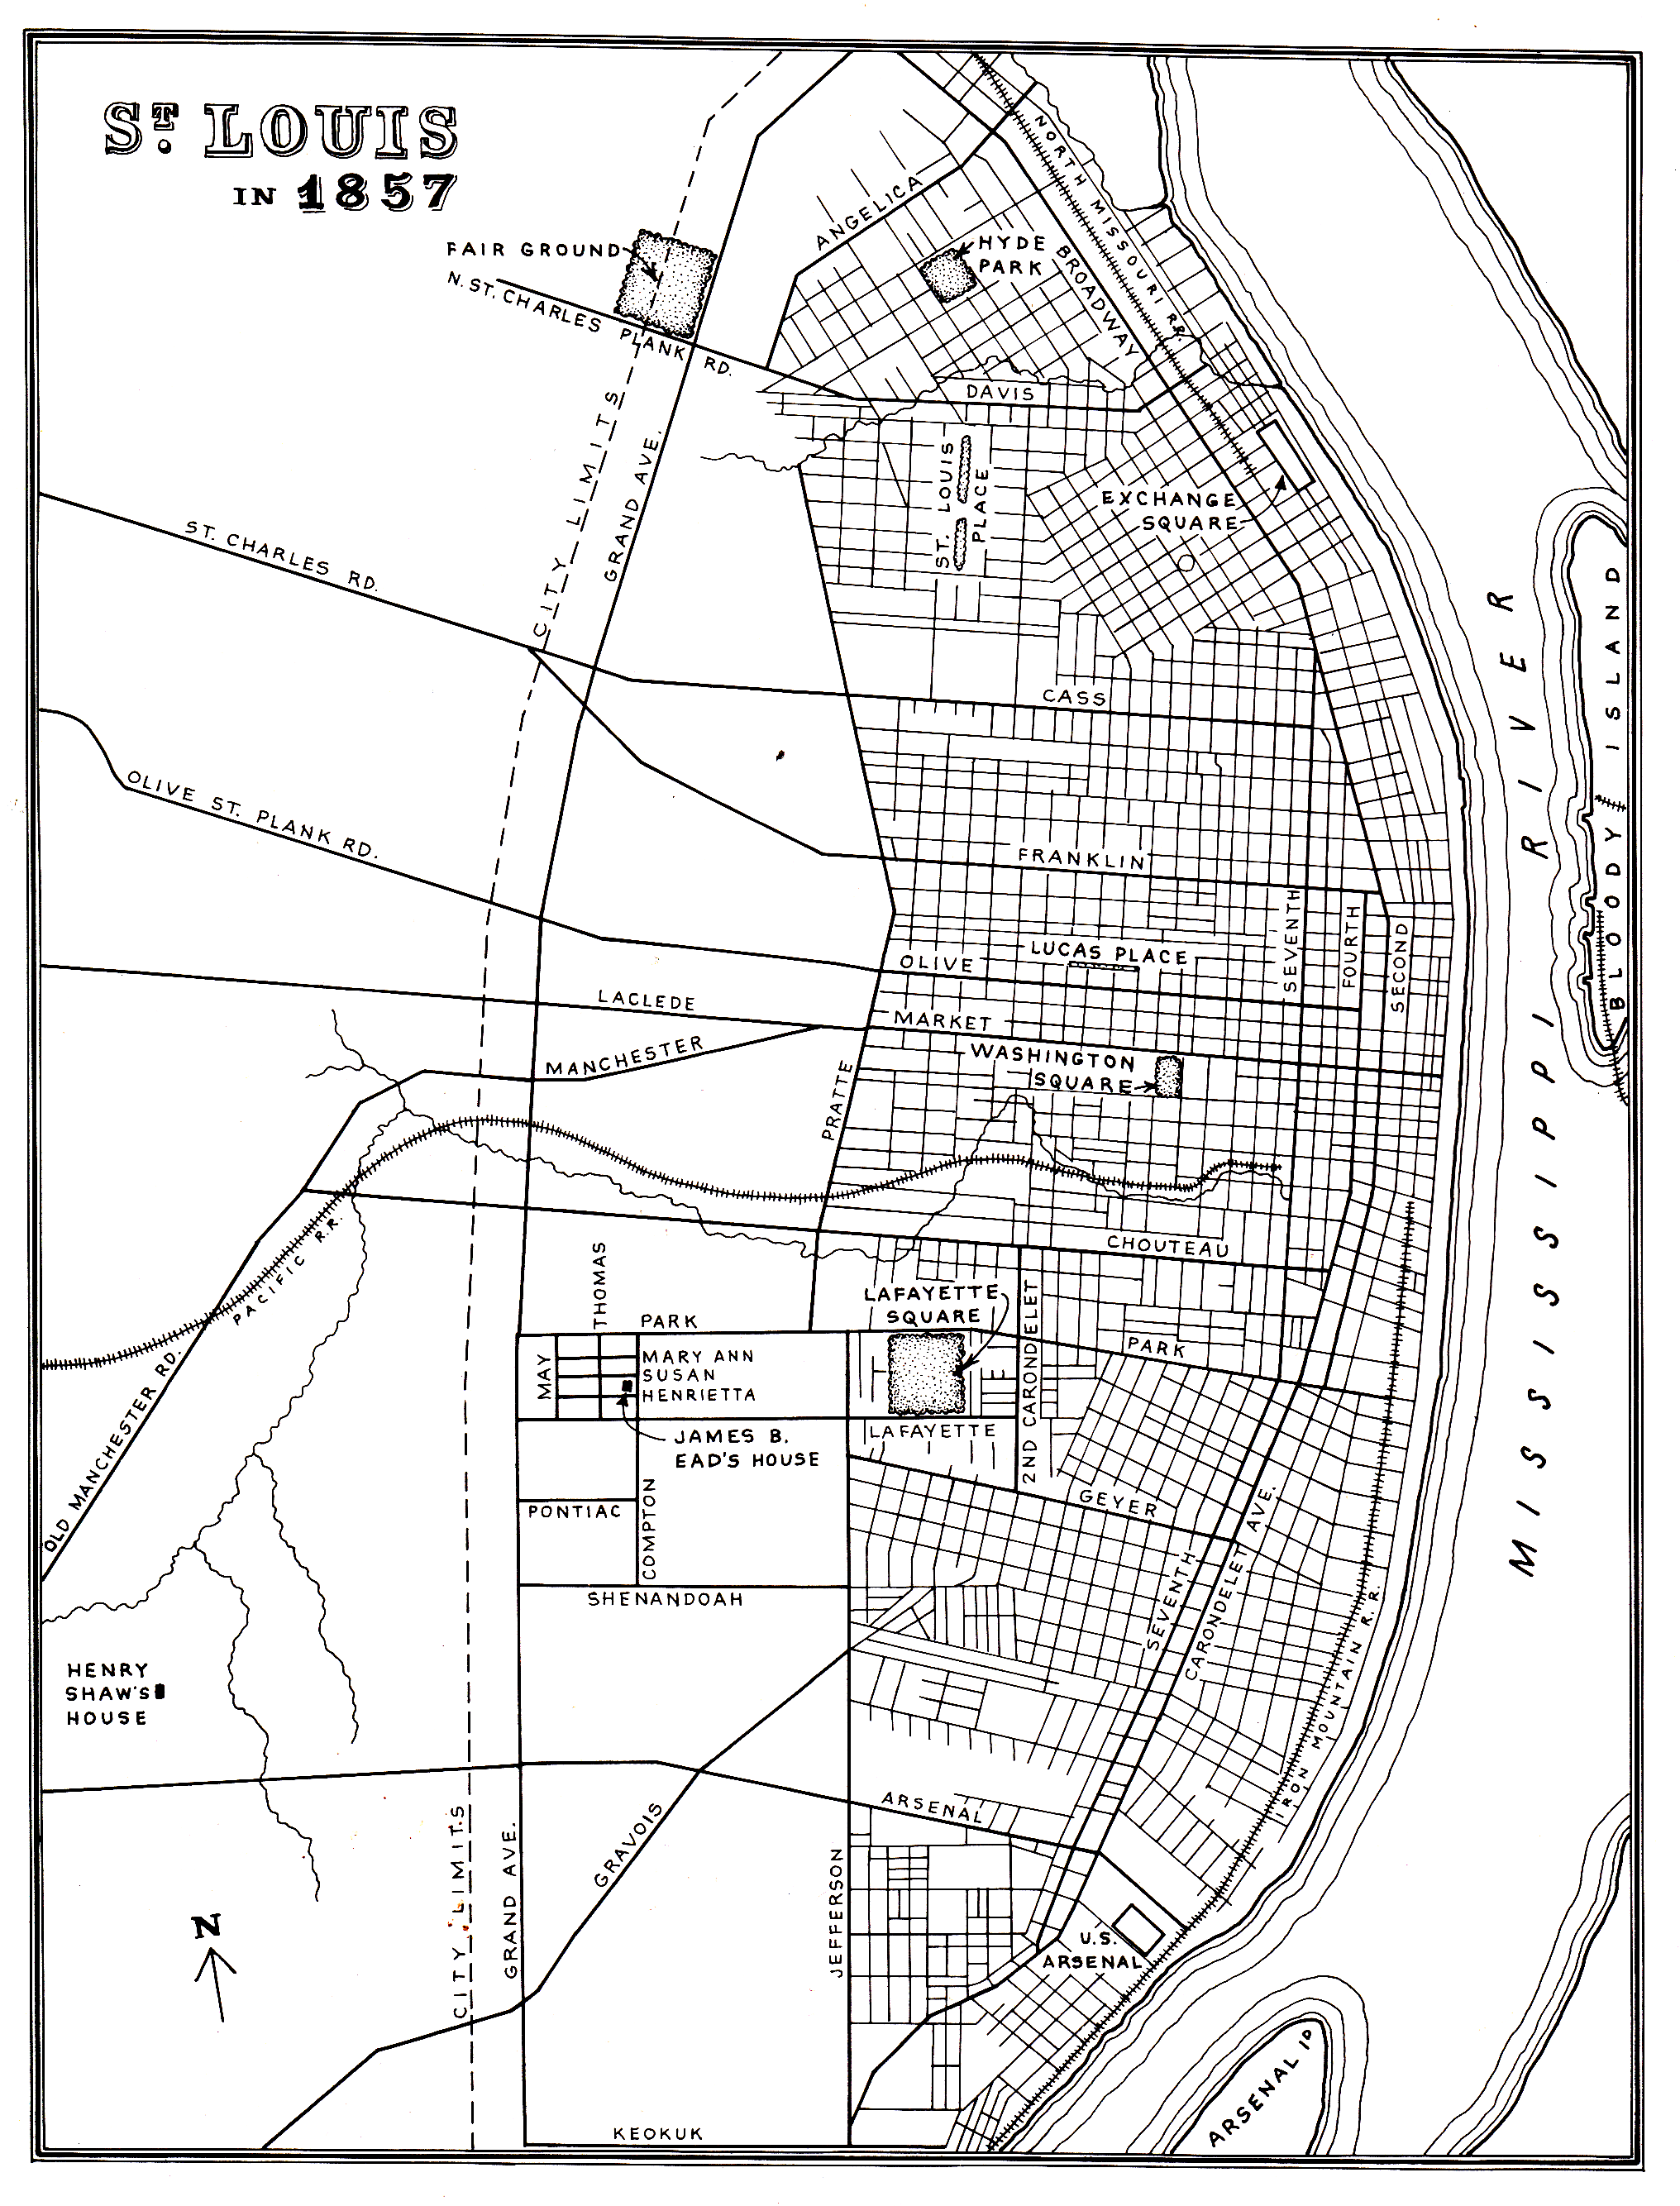 Compton Heights History 2nd Judicial Circuit Historical Society Maps In 1855 The City Limits